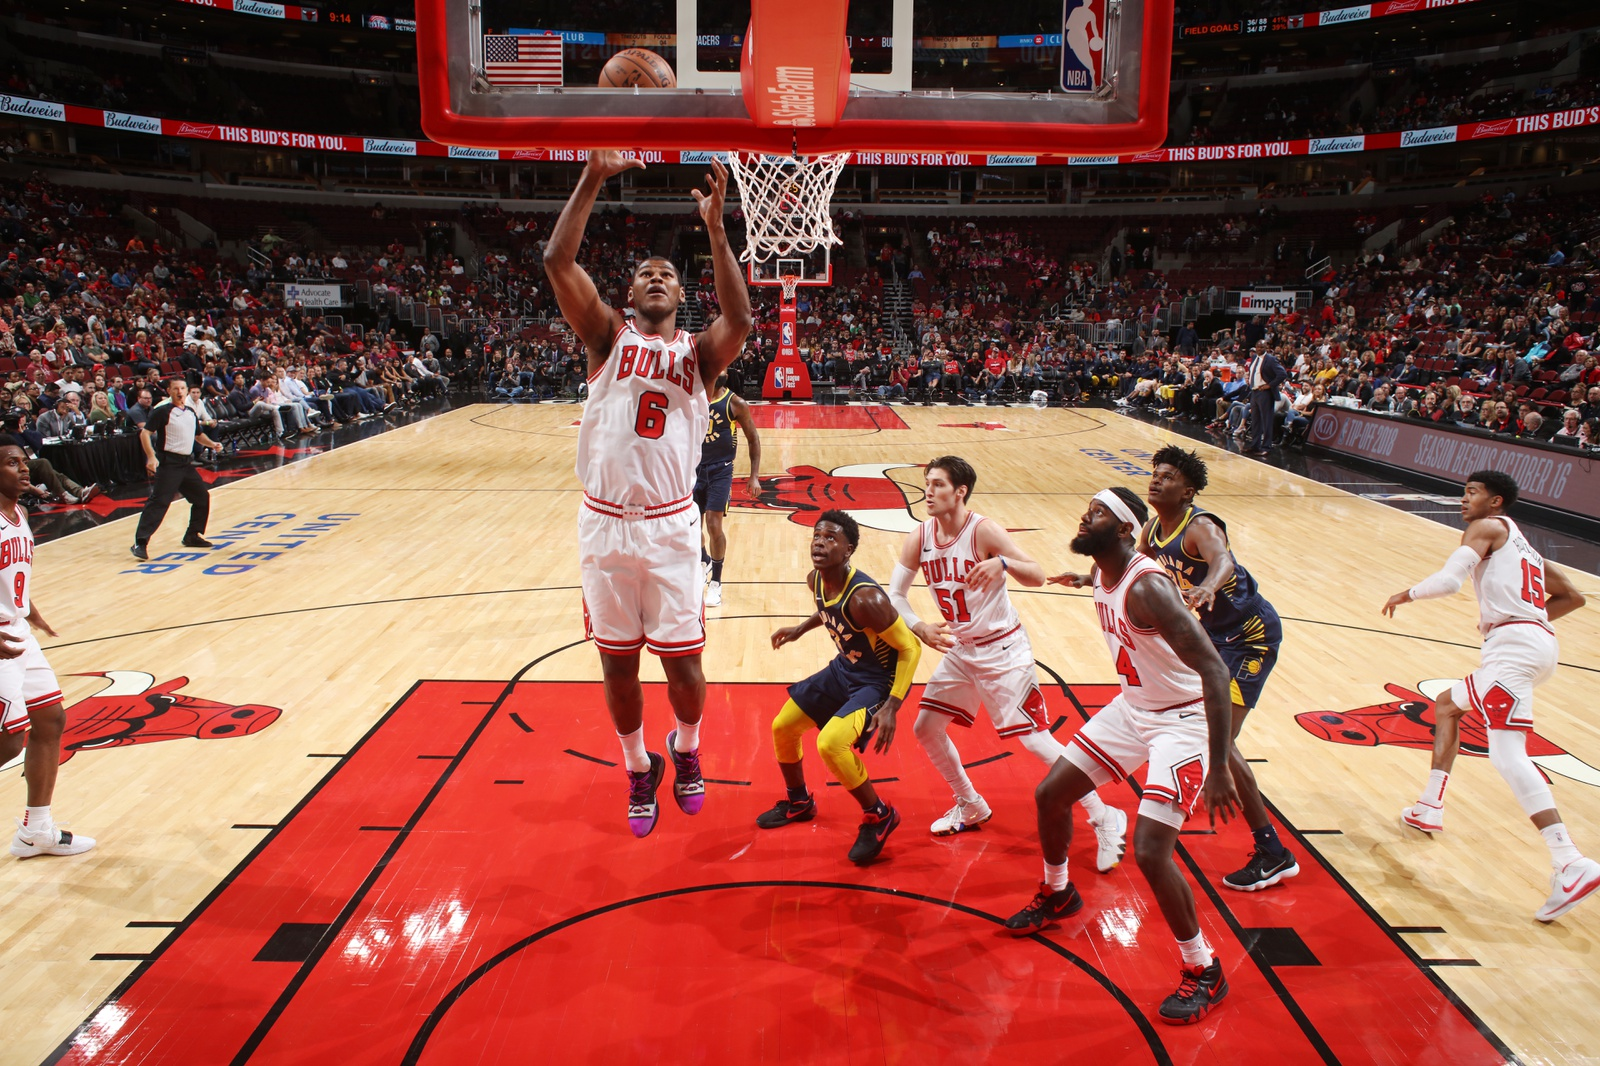 Cristiano Felicio \#6 of the Chicago Bulls shoots the ball against the Indiana Pacers during a pre-season game on October 10, 2018 at the United Center in Chicago, Illinois.